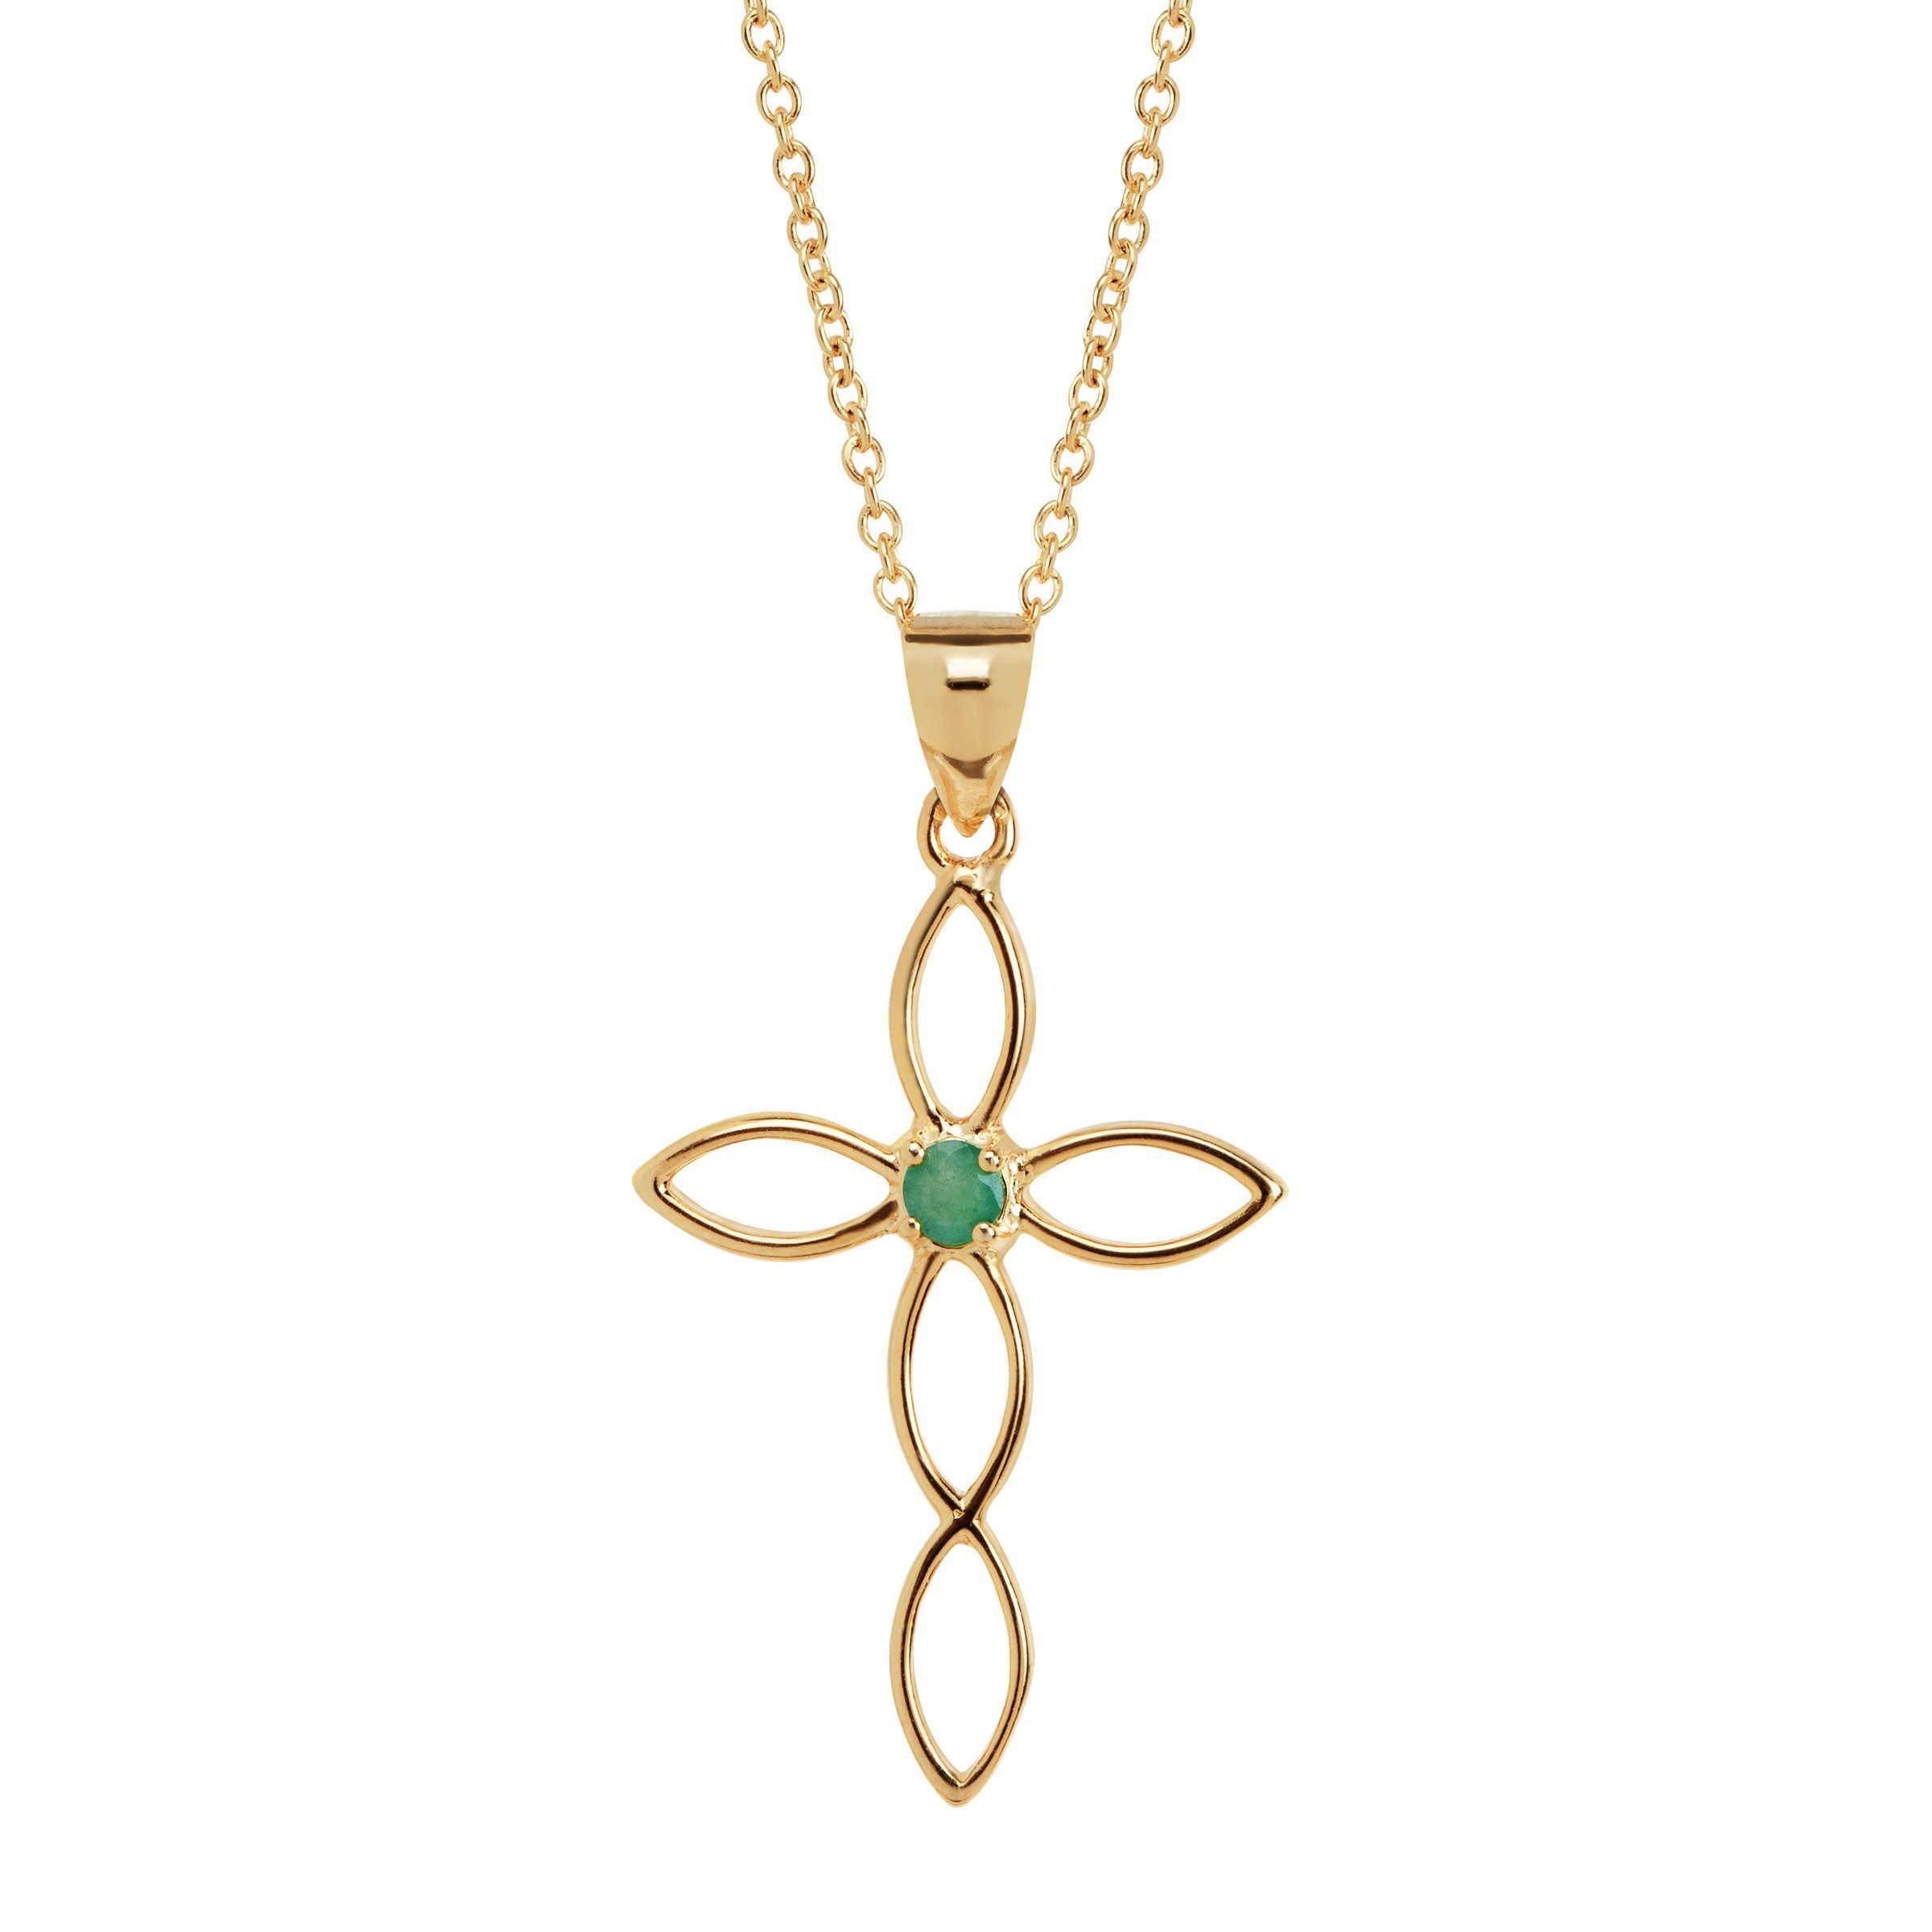 h cross of clarity diamond pendant emerald ct noray gold sap flower copy blue chain stone with color g or products ruby designs sapphire